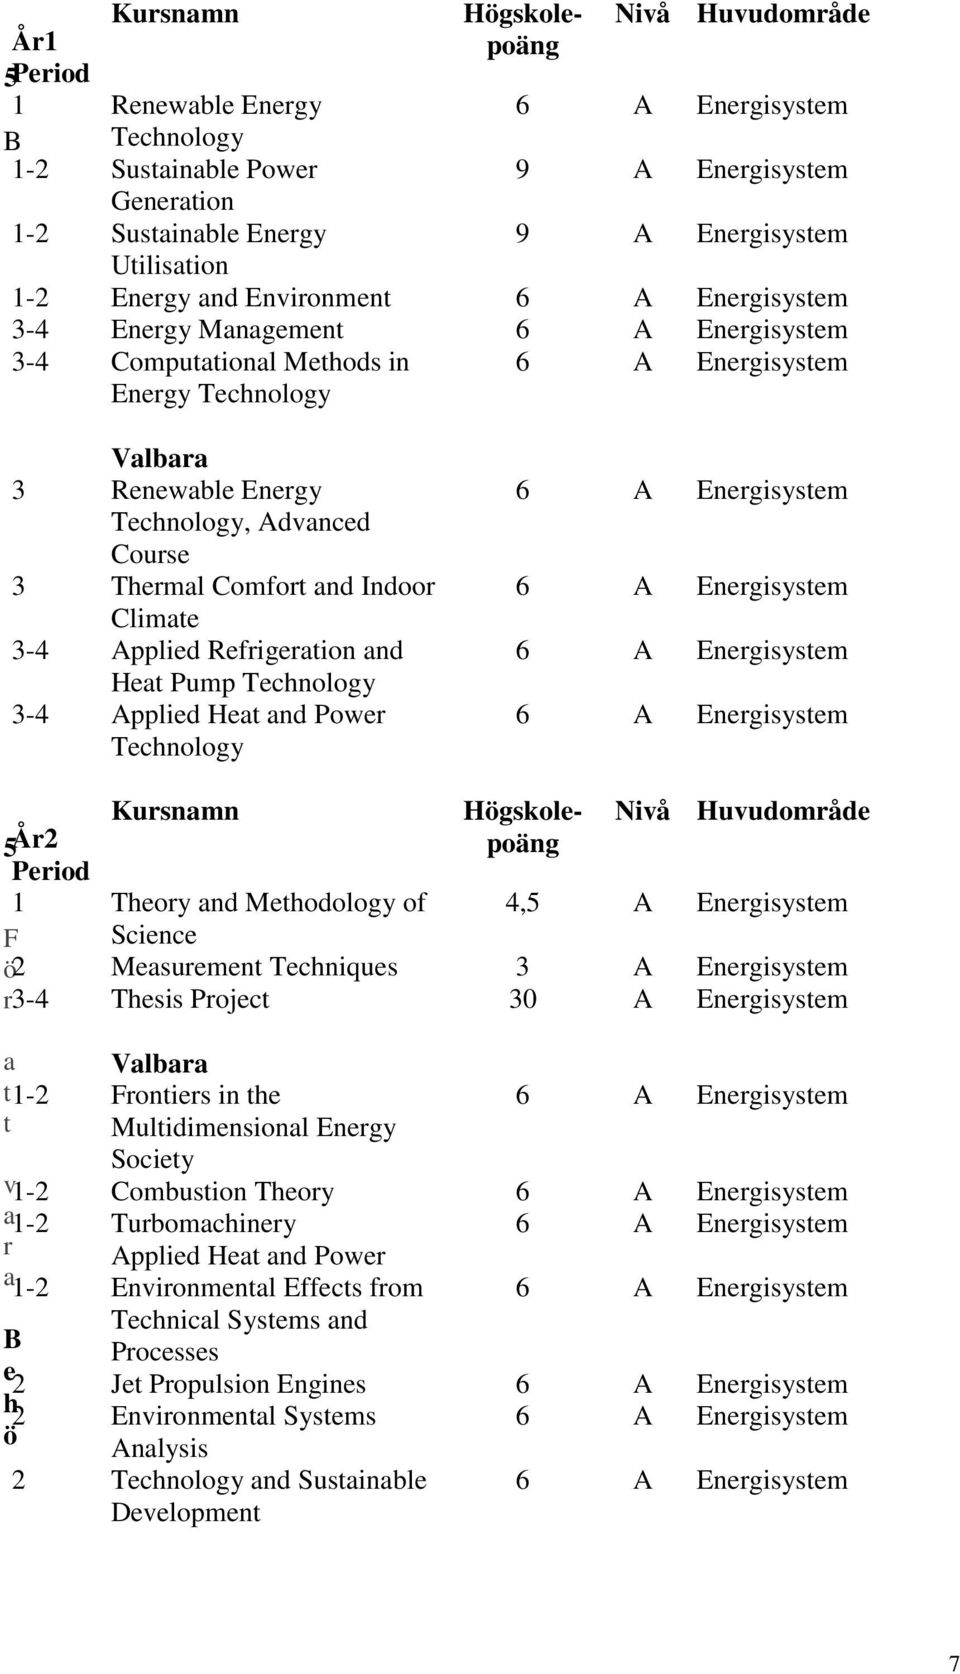 Power 9 A Energisystem Generation 1-2 Sustainable Energy 9 A Energisystem Utilisation 1-2 Energy and Environment 3-4 Energy Management 3-4 Computational Methods in Energy Technology Högskolepoäng A A